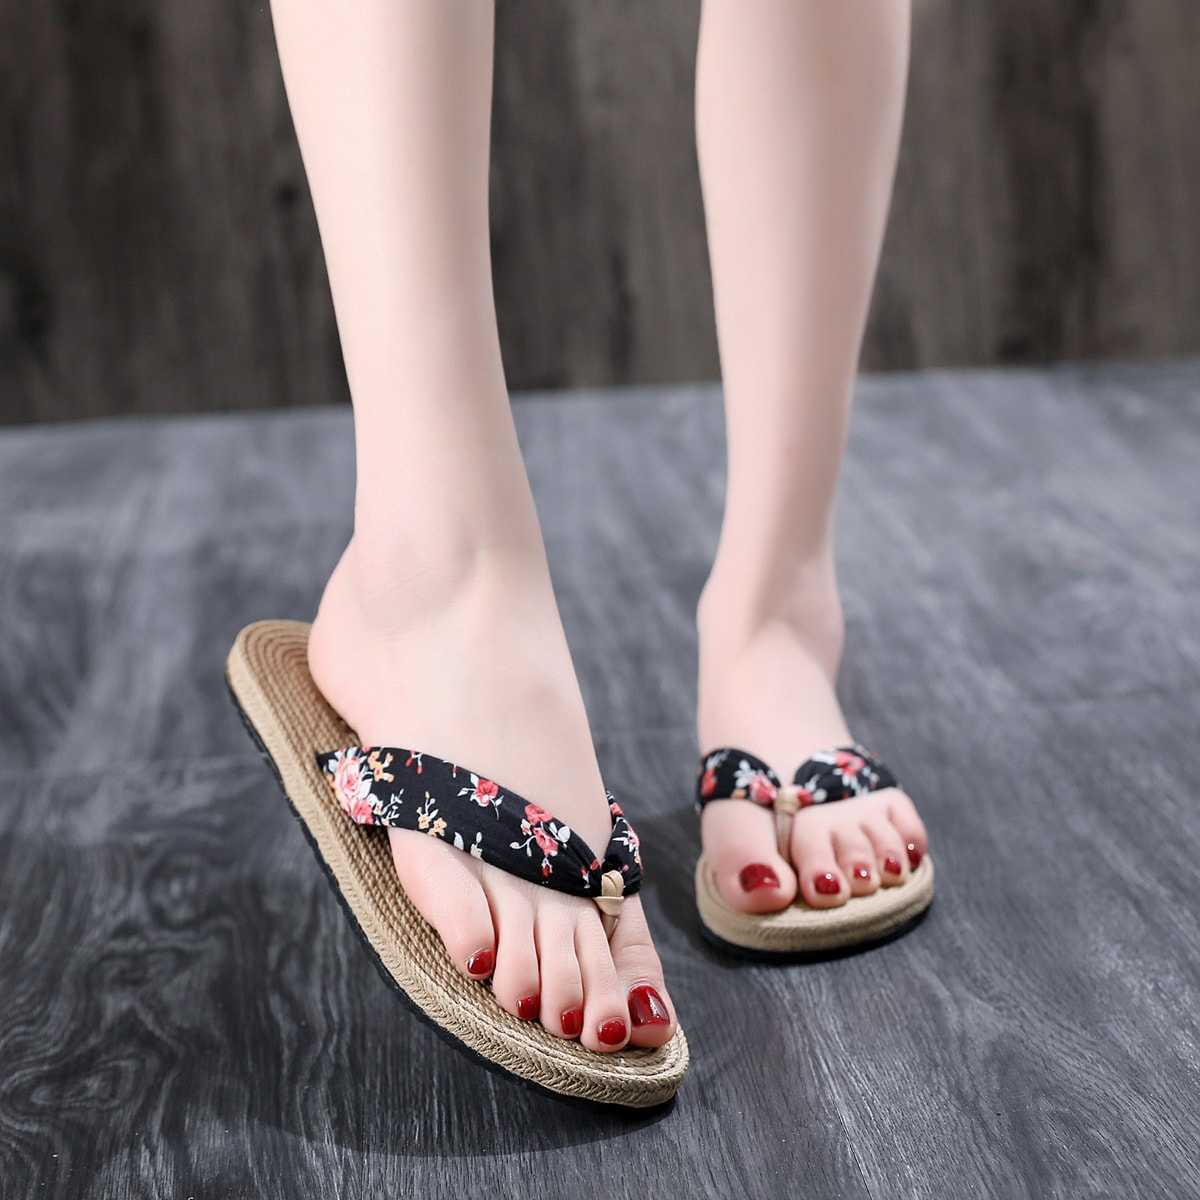 Floral Print Flip Flops in Multicolor by ROMWE on GOOFASH